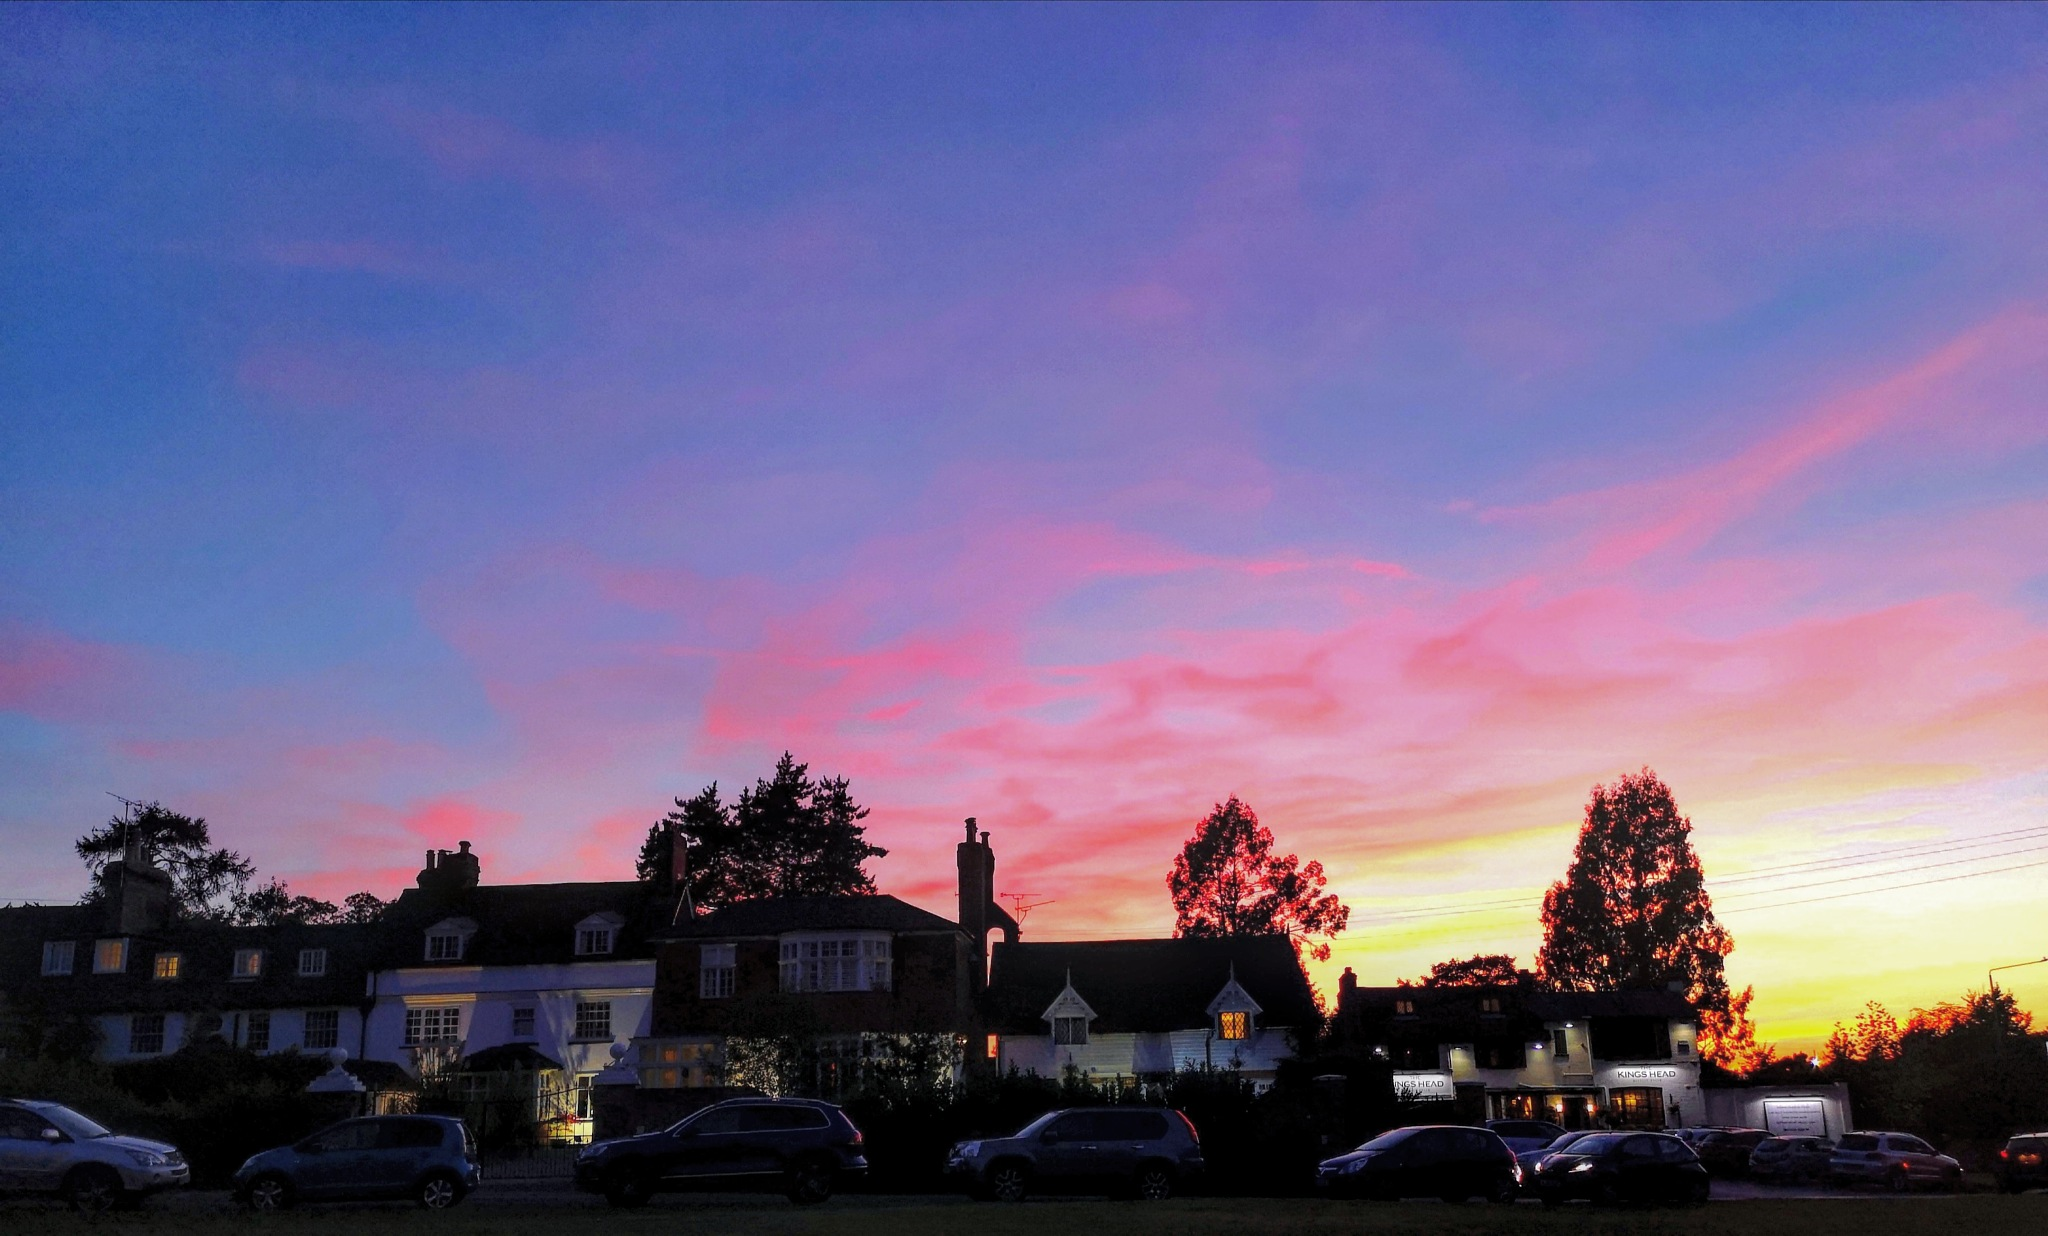 Sunset over Sevenoaks by everydaywithcandk